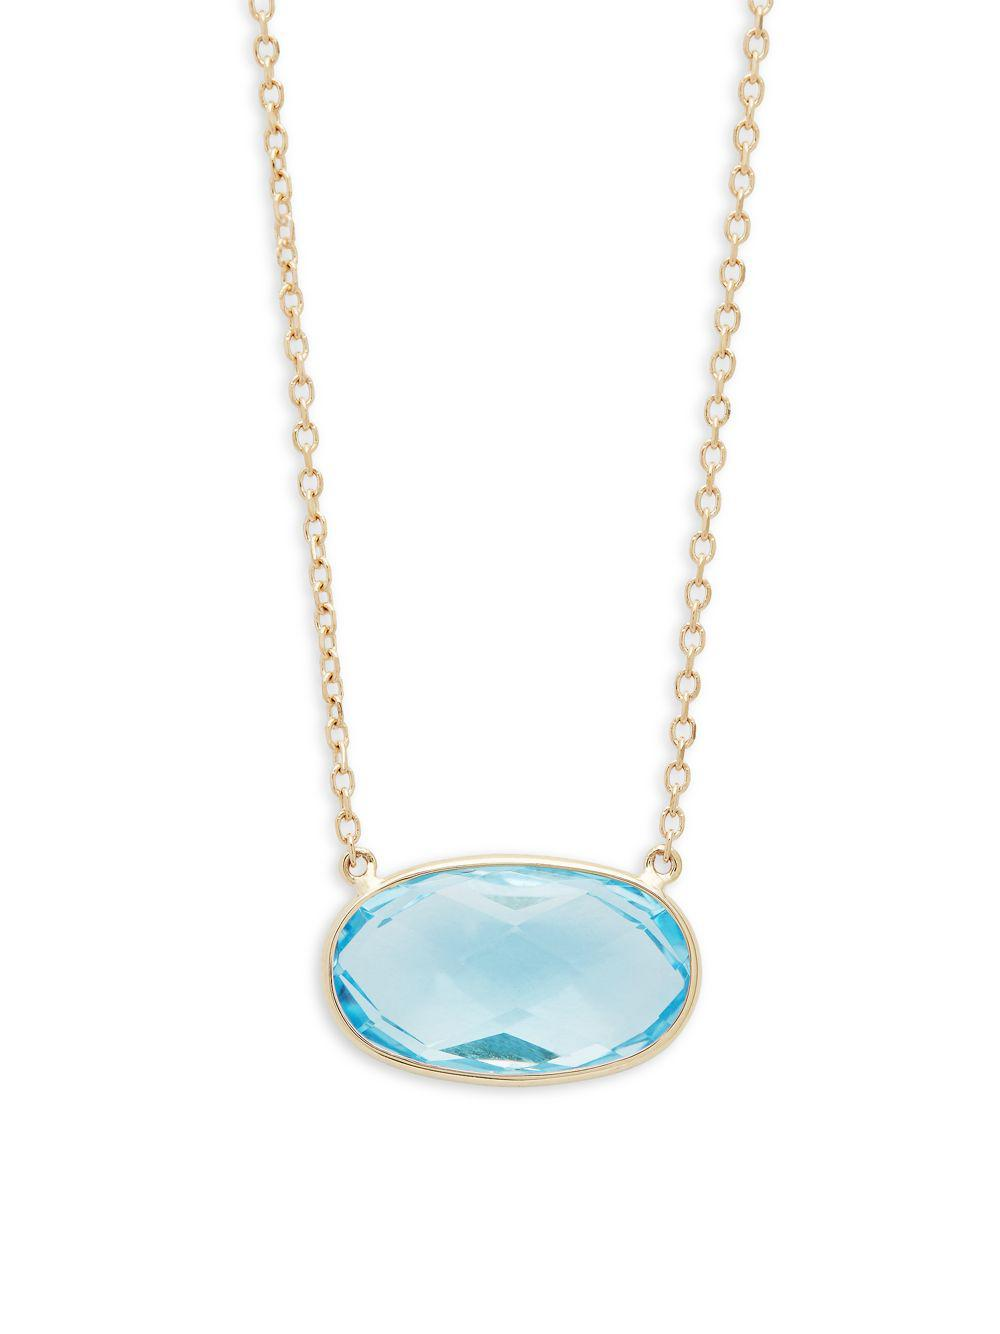 Lyst saks fifth avenue oval sky blue topaz and 14k yellow gold saks fifth avenue womens oval sky blue topaz and 14k yellow gold pendant necklace aloadofball Image collections